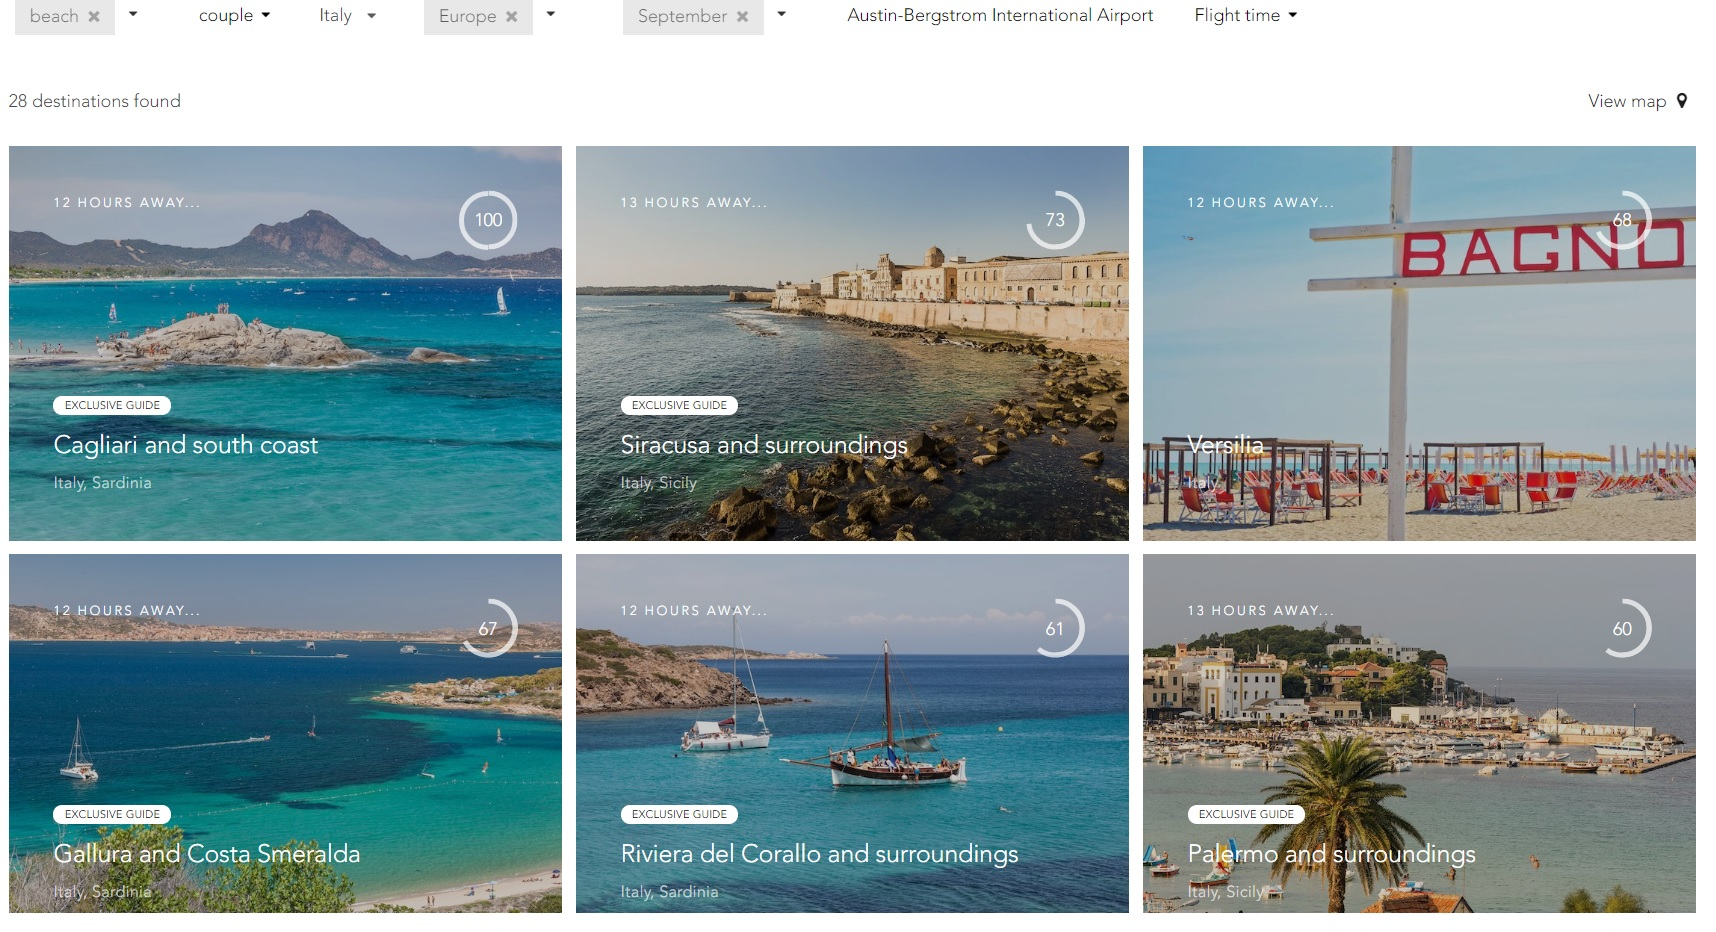 Vivere Summer 2018 Search Results